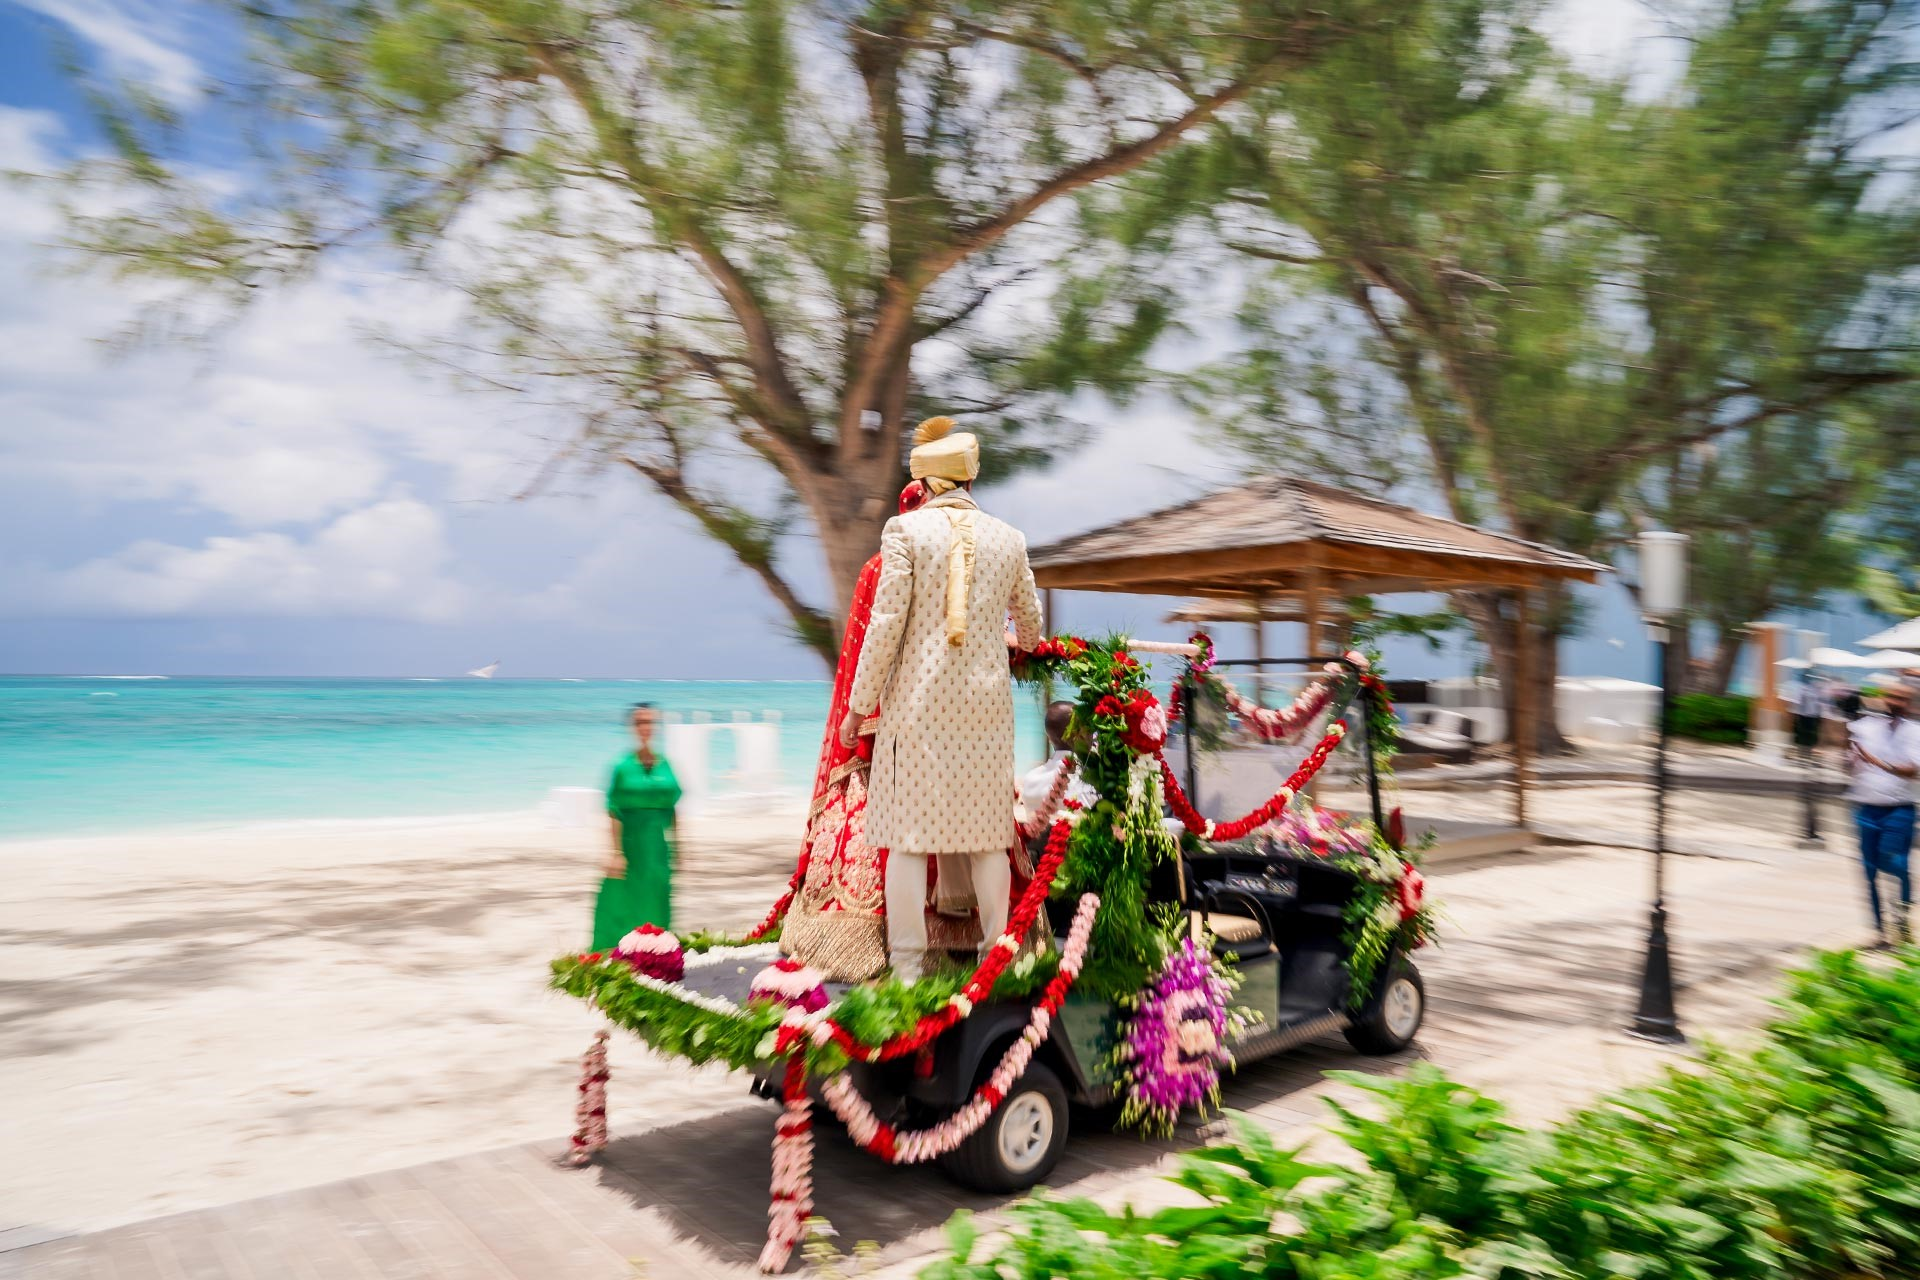 Baraat ceremony for the groom to ride into his wedding in style at Beaches Turks and Caicos